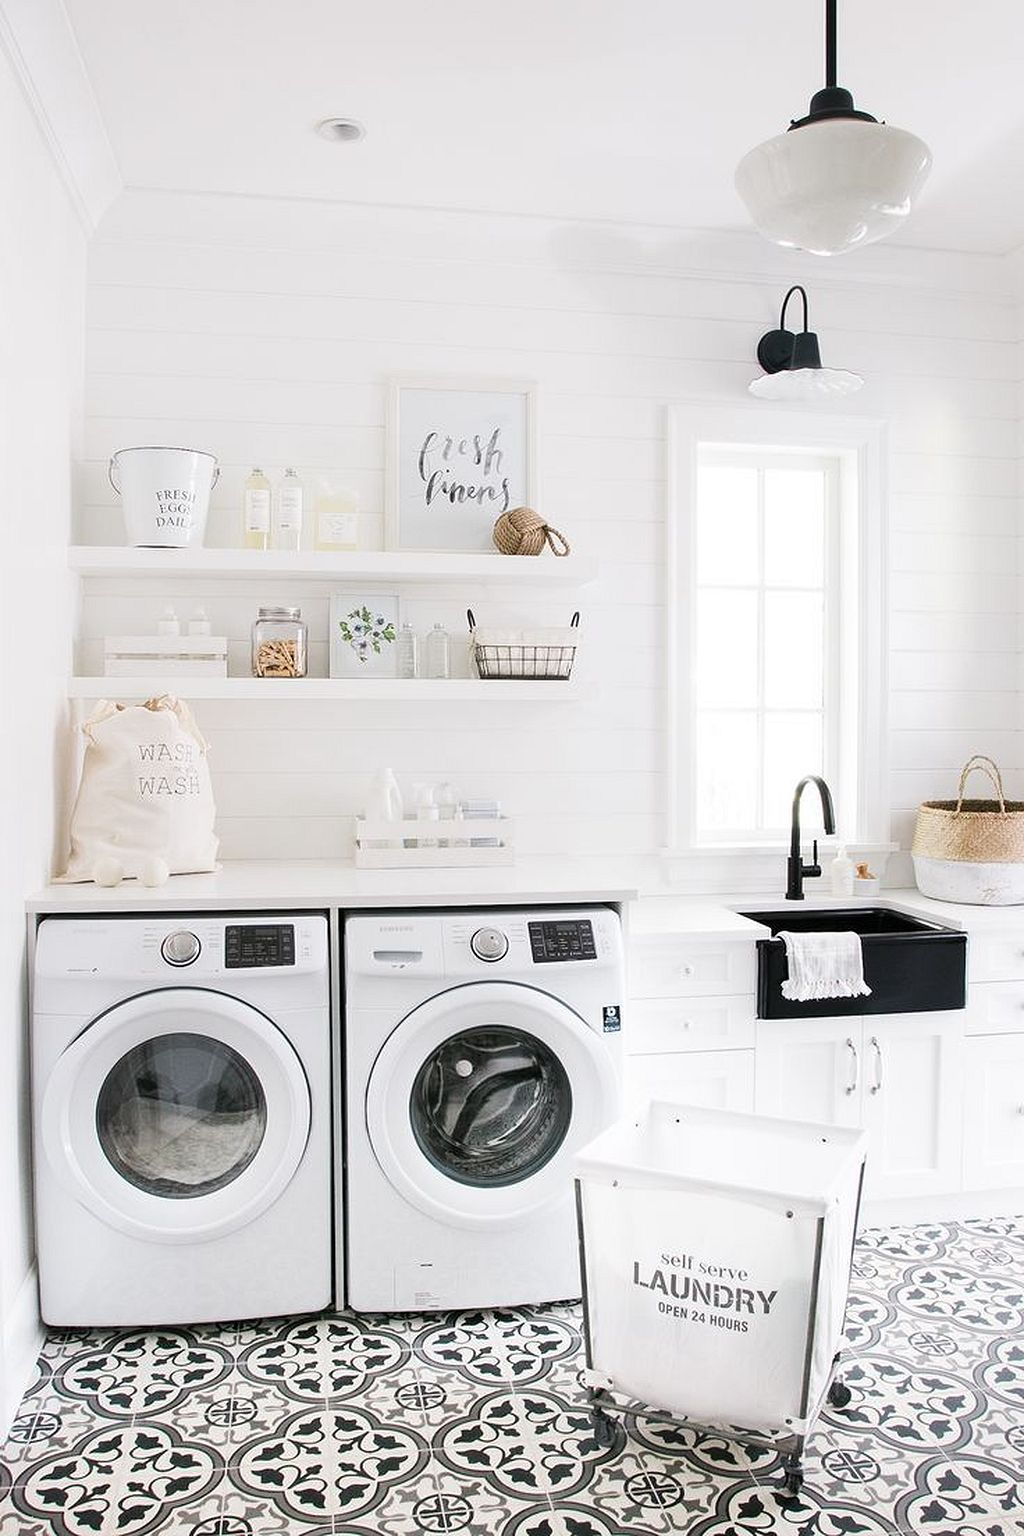 Great Ideas to Arrange Small Space for Mudroom Laundry | Mudroom ...